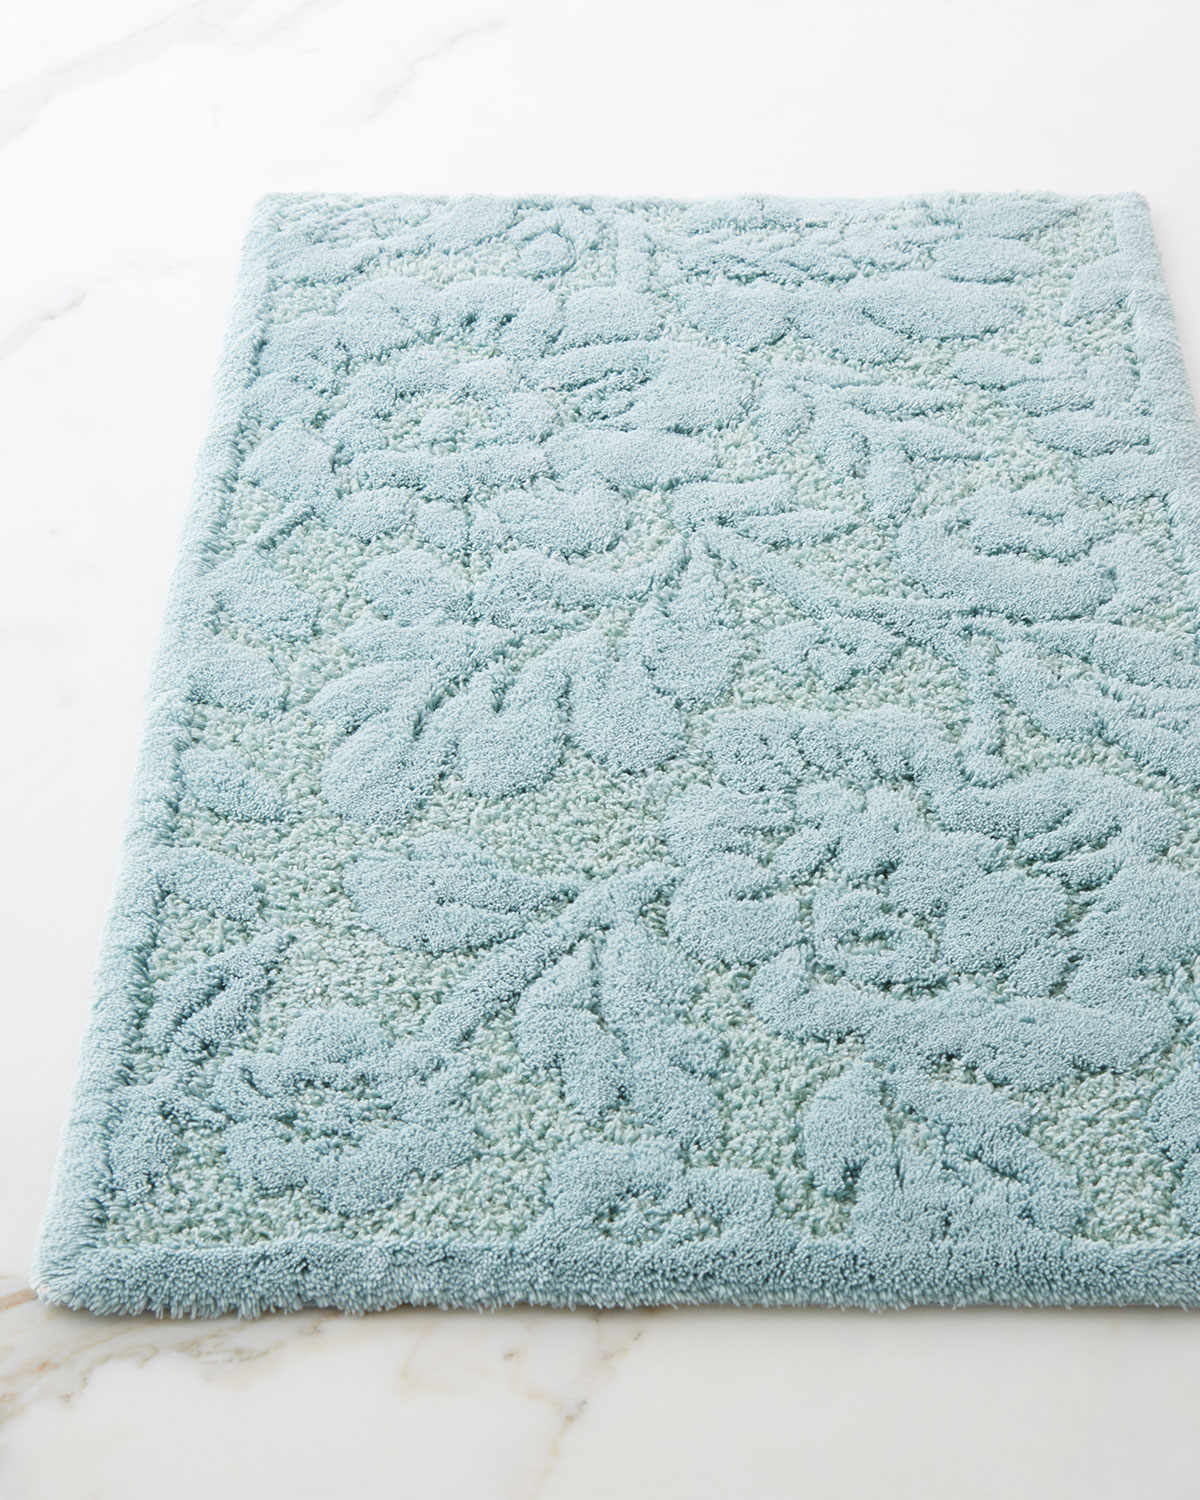 Brighton Bath Rug Approx 27 x 55